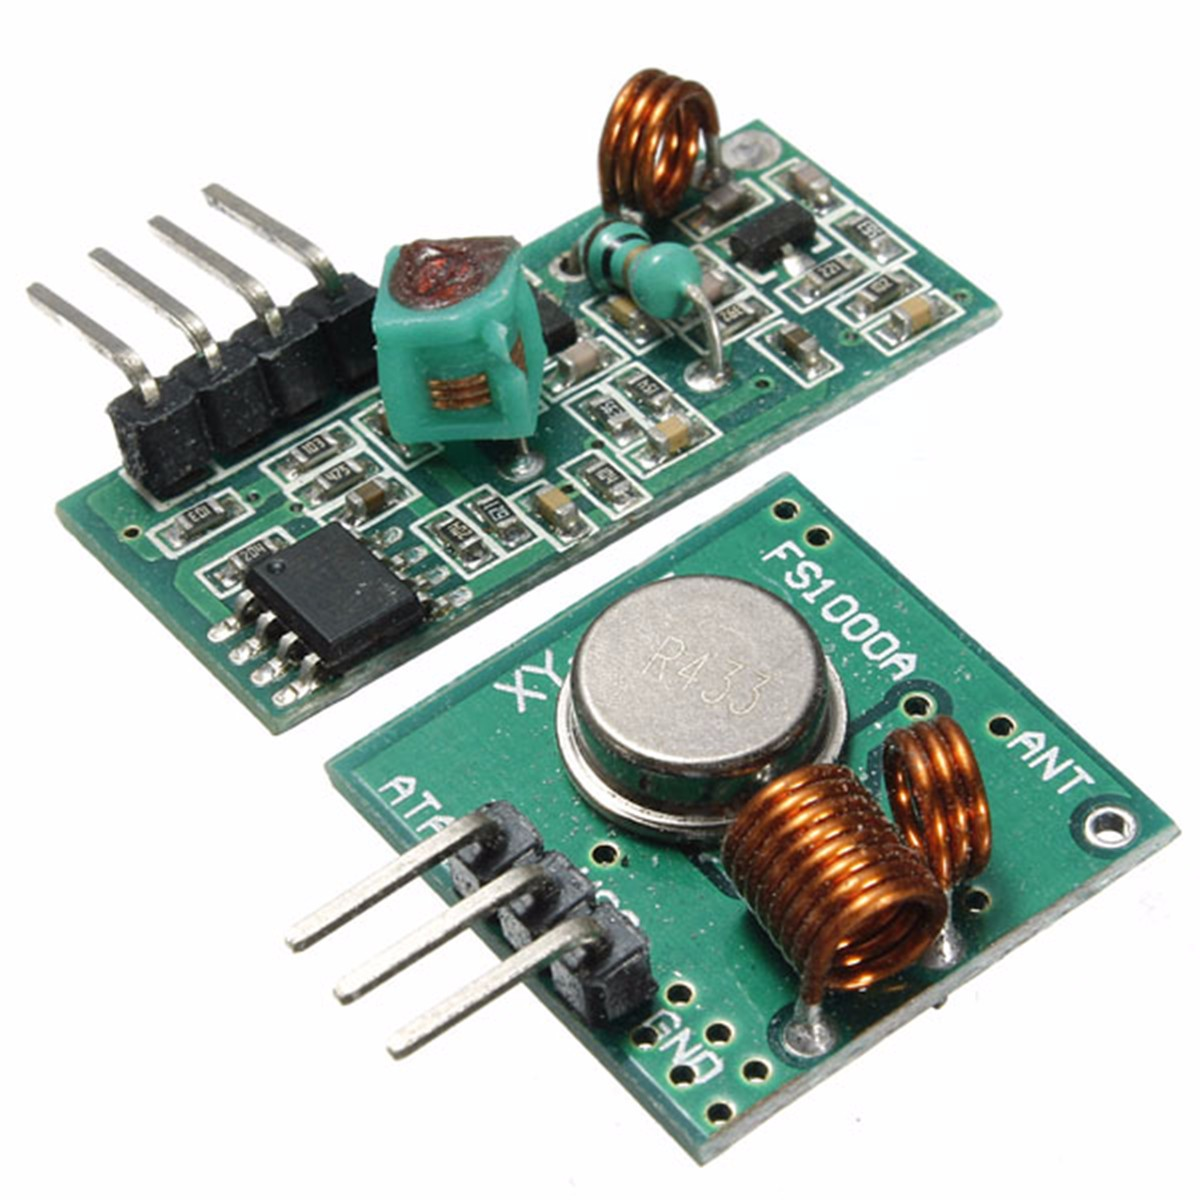 433mhz Rf Decoder Transmitter With Receiver Module Kit For Arduino Circuit Esp8266 Copy Shipping Methods